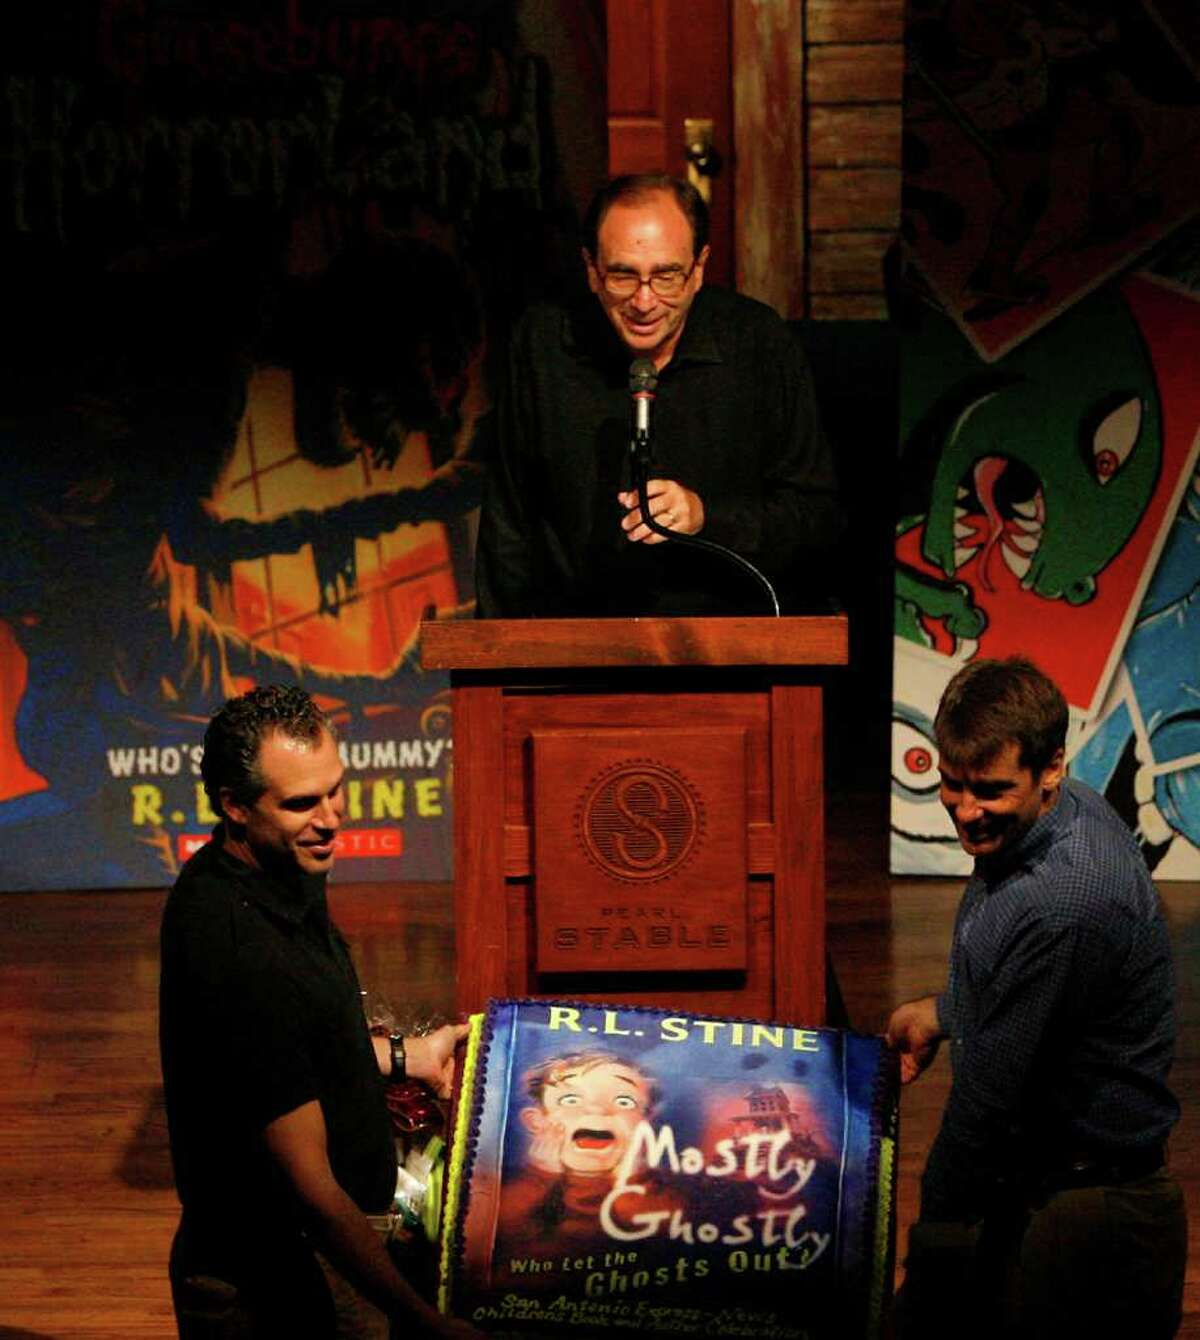 Author R.L. Stine is presented with a birthday cake before a speech to the audience during the Express-News Children's Book & Author Celebration at Pearl Stable, benefiting the S.A. Public Library Foundation's Born to Read program on Oct. 8, 2011.